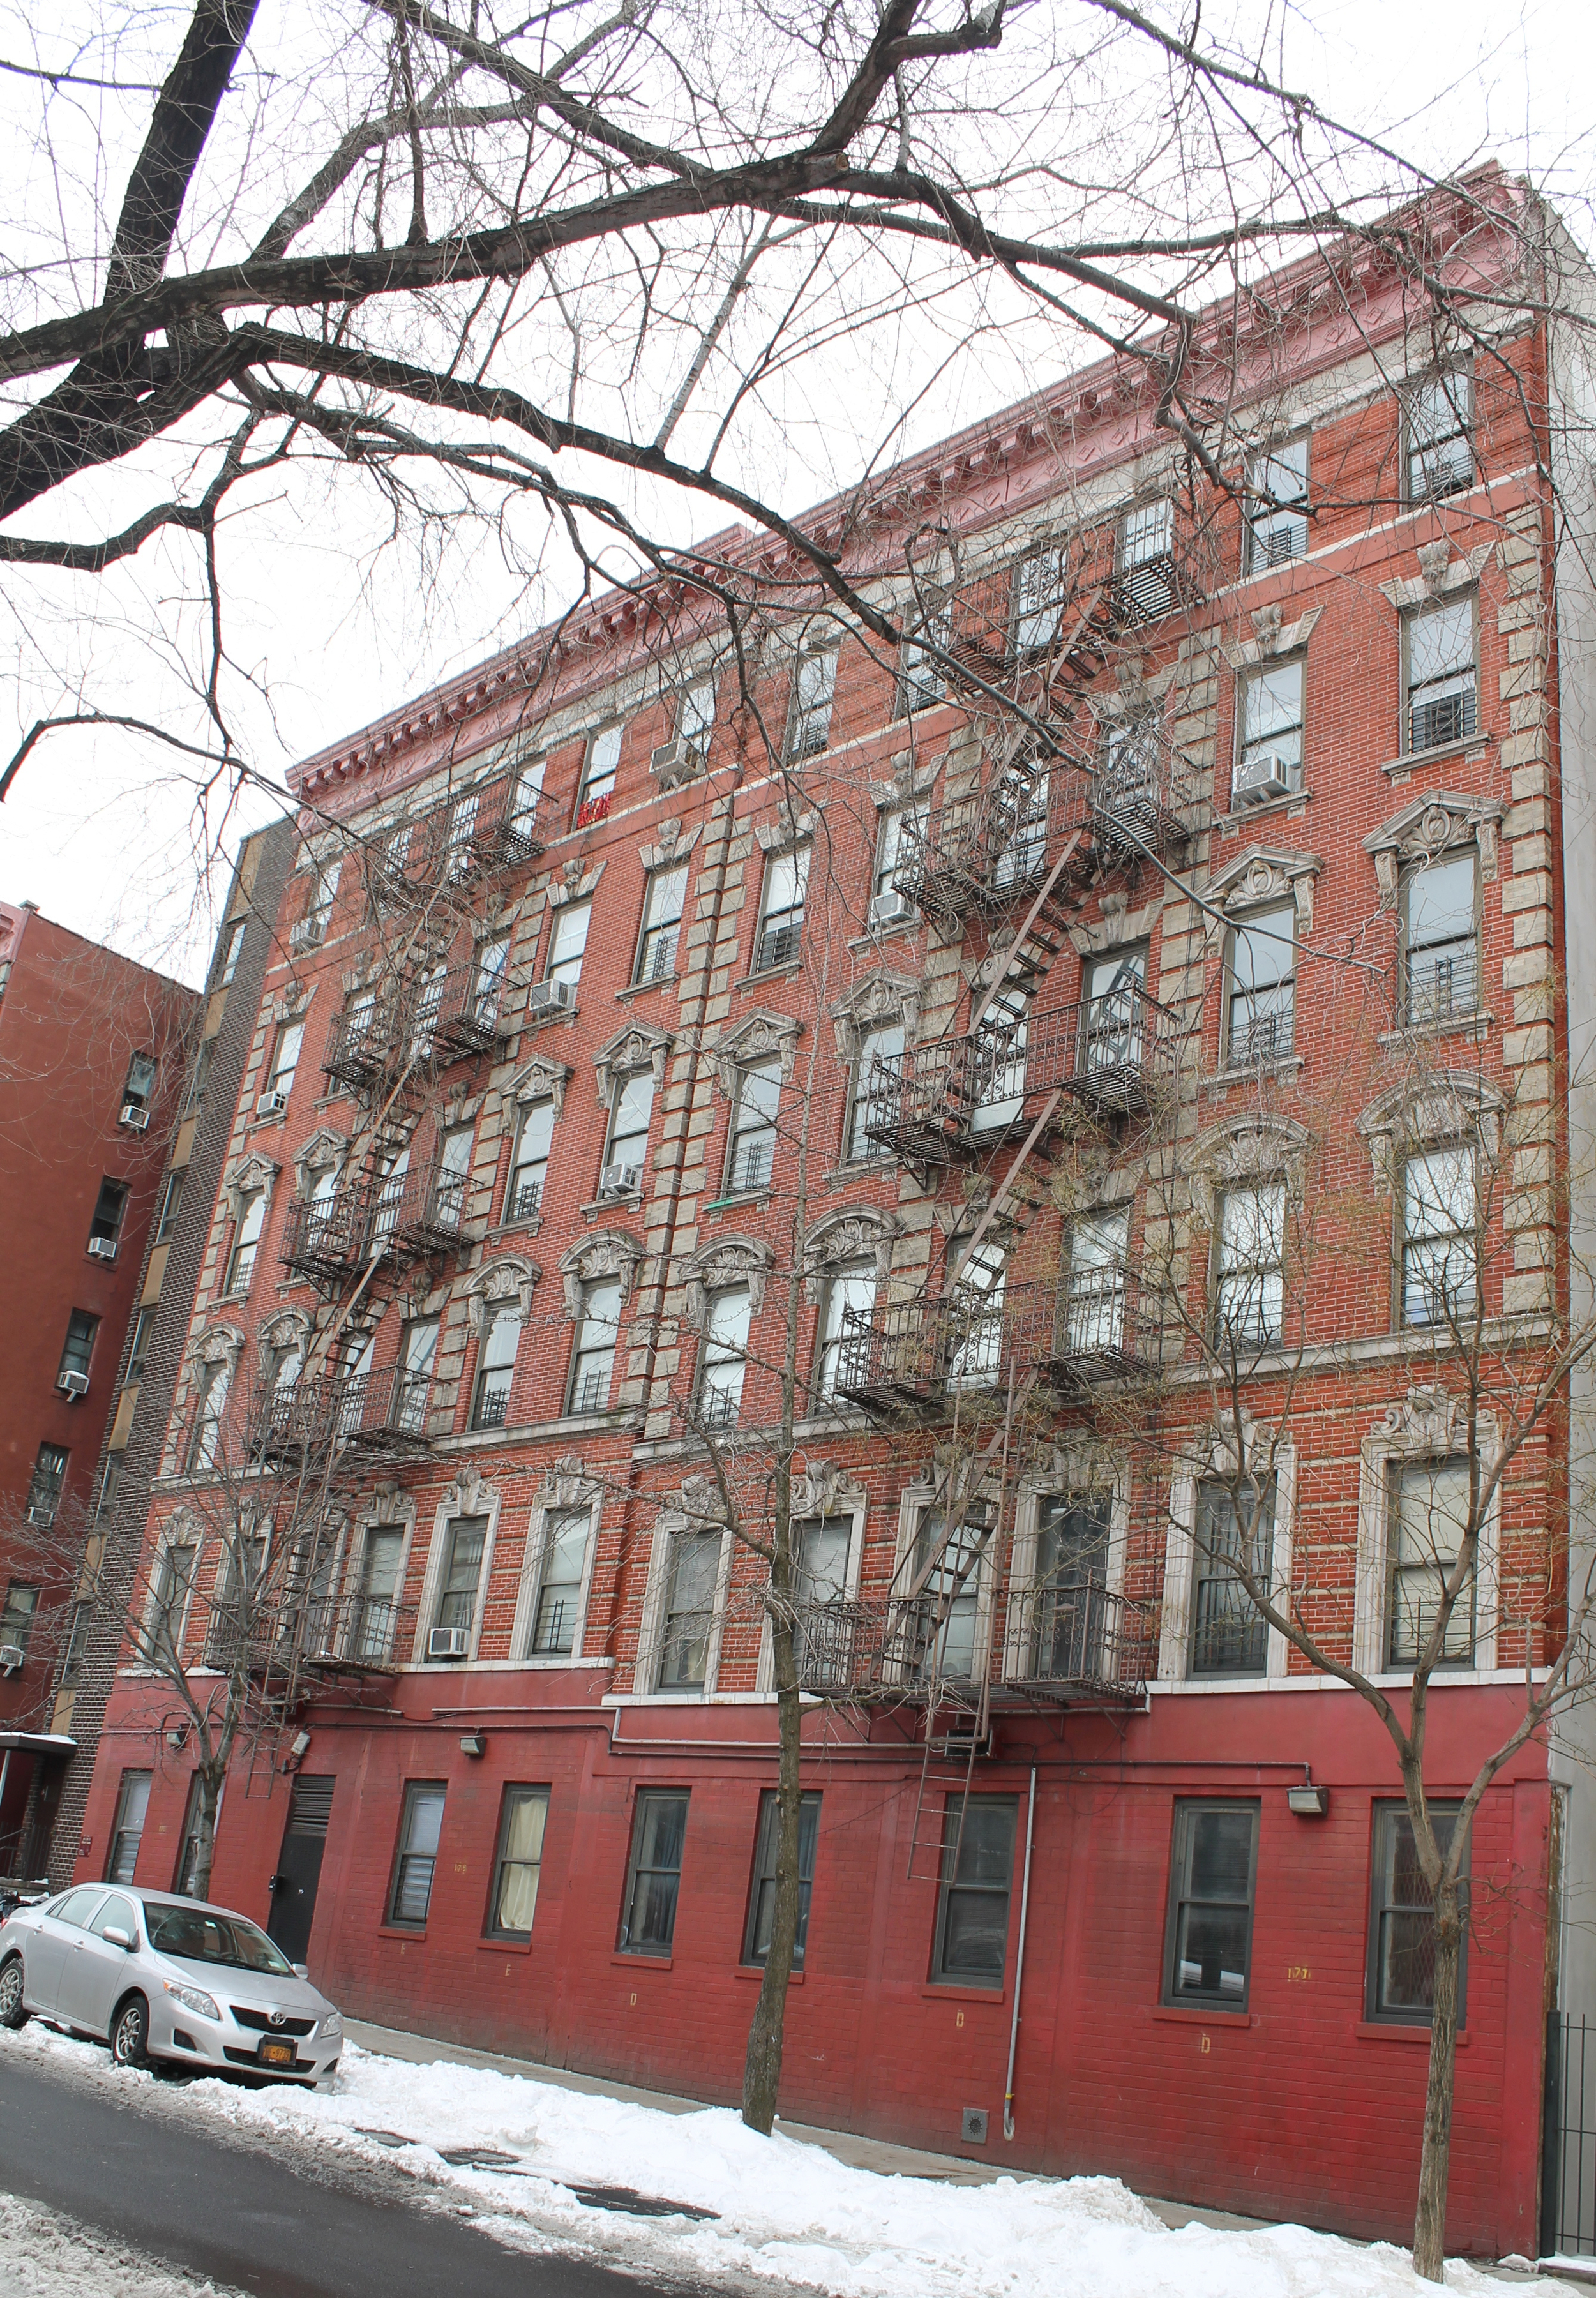 Building 4 of 4-20 East 117th Street, as seen on March 3, 2015. Source : Louis Flores